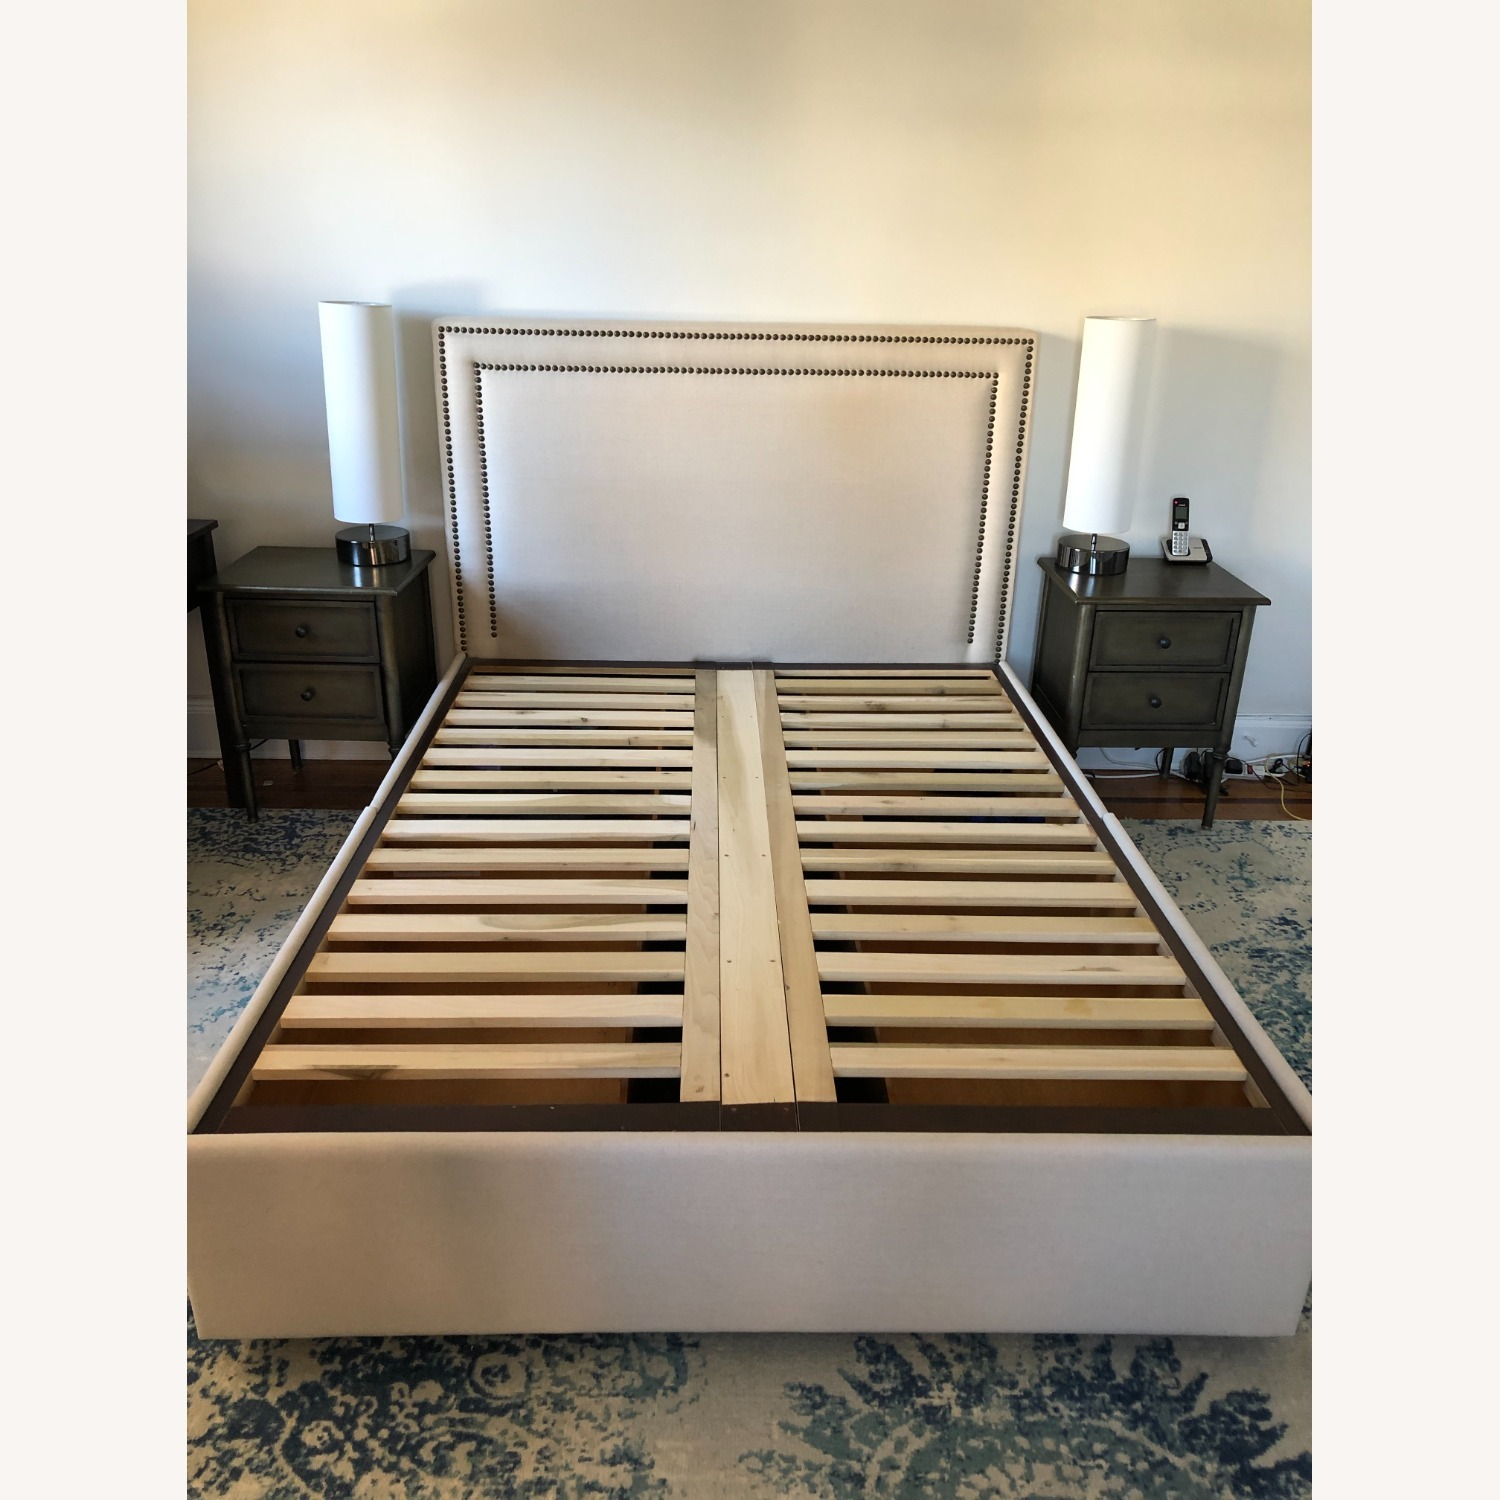 Pottery Barn Upholstered Queen Bed with Storage - image-2